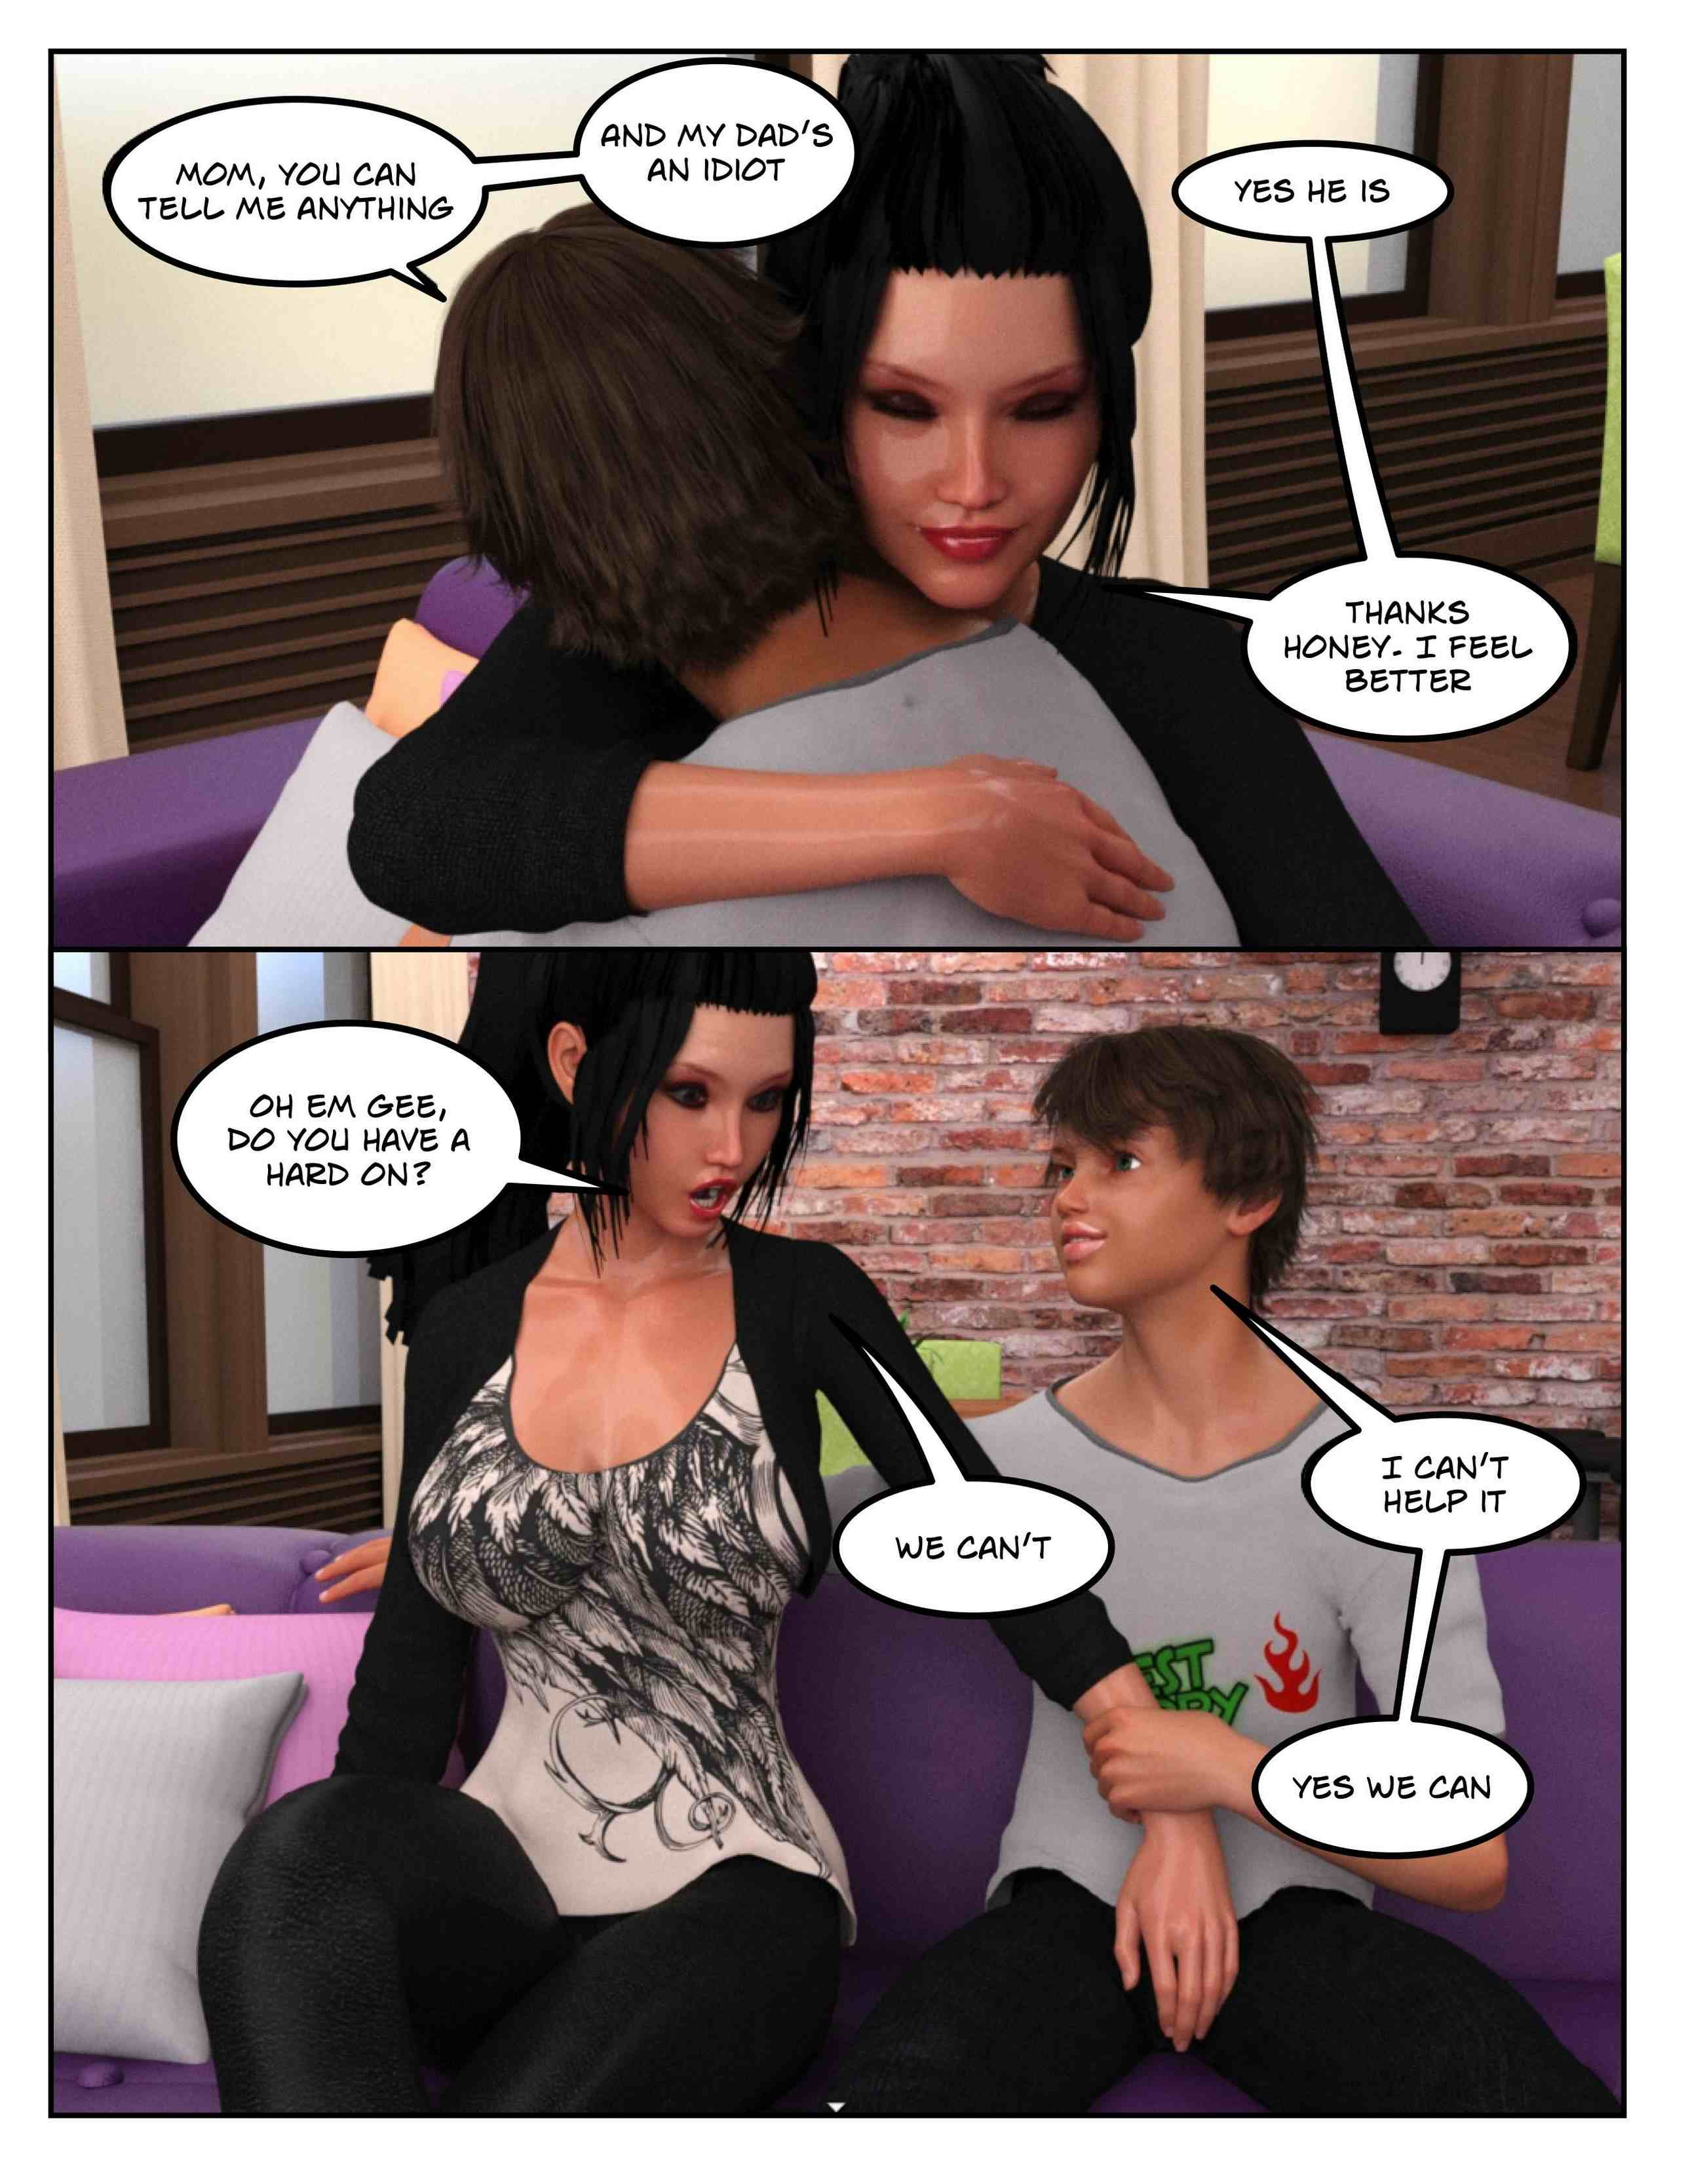 Mom Chapter 2 By Icstor